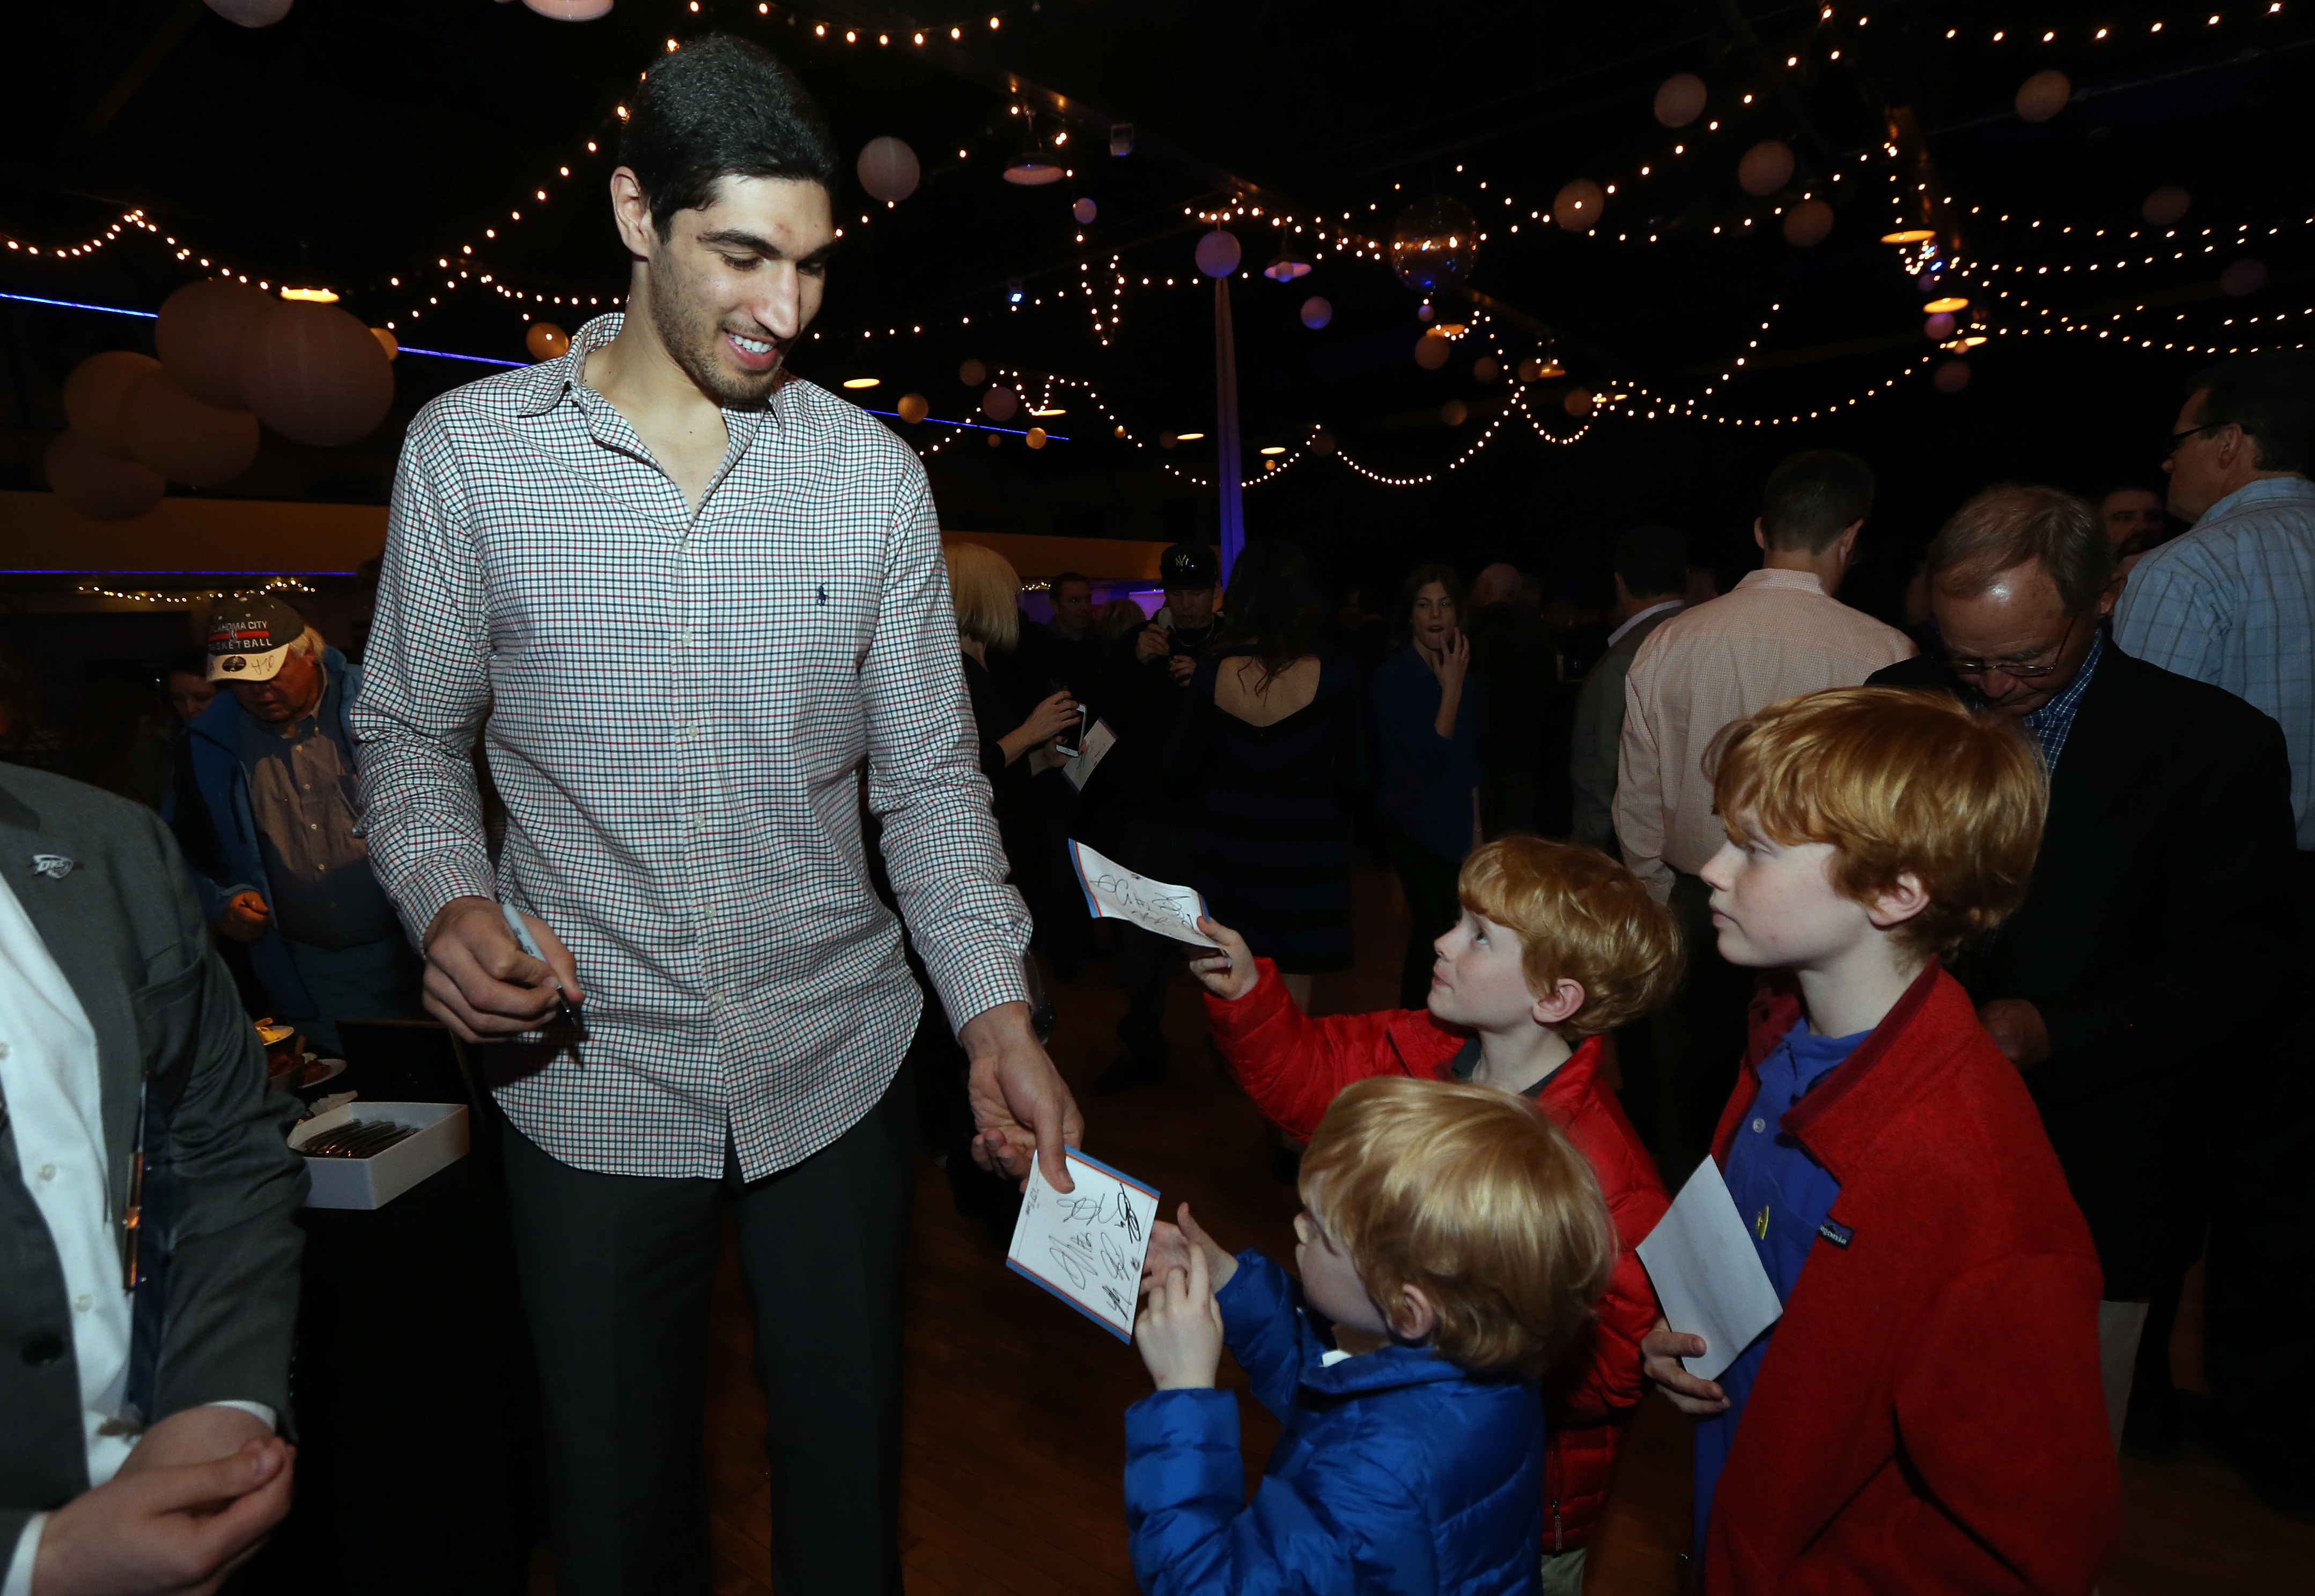 Enes Kanter #34 of the Oklahoma City Thunder signs autographs for fans at a Thunder Season ticket holder VIP event on March 3, 2015 at the Oklahoma City Farmers Market in Oklahoma City, Oklahoma.